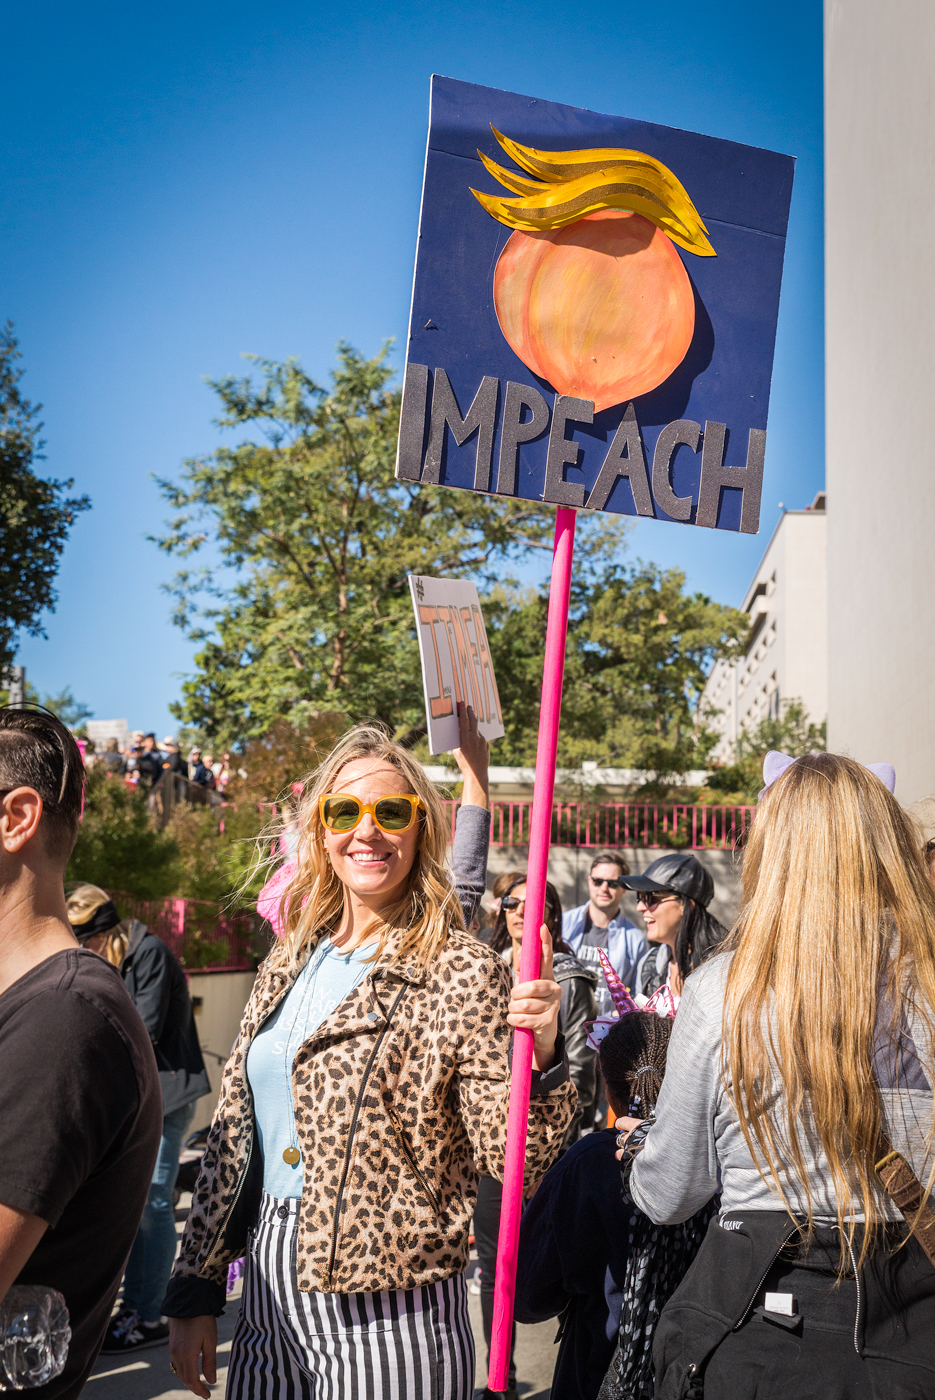 (2018) The peach is back - hair and all. Calls for impeachment are strong at the march.